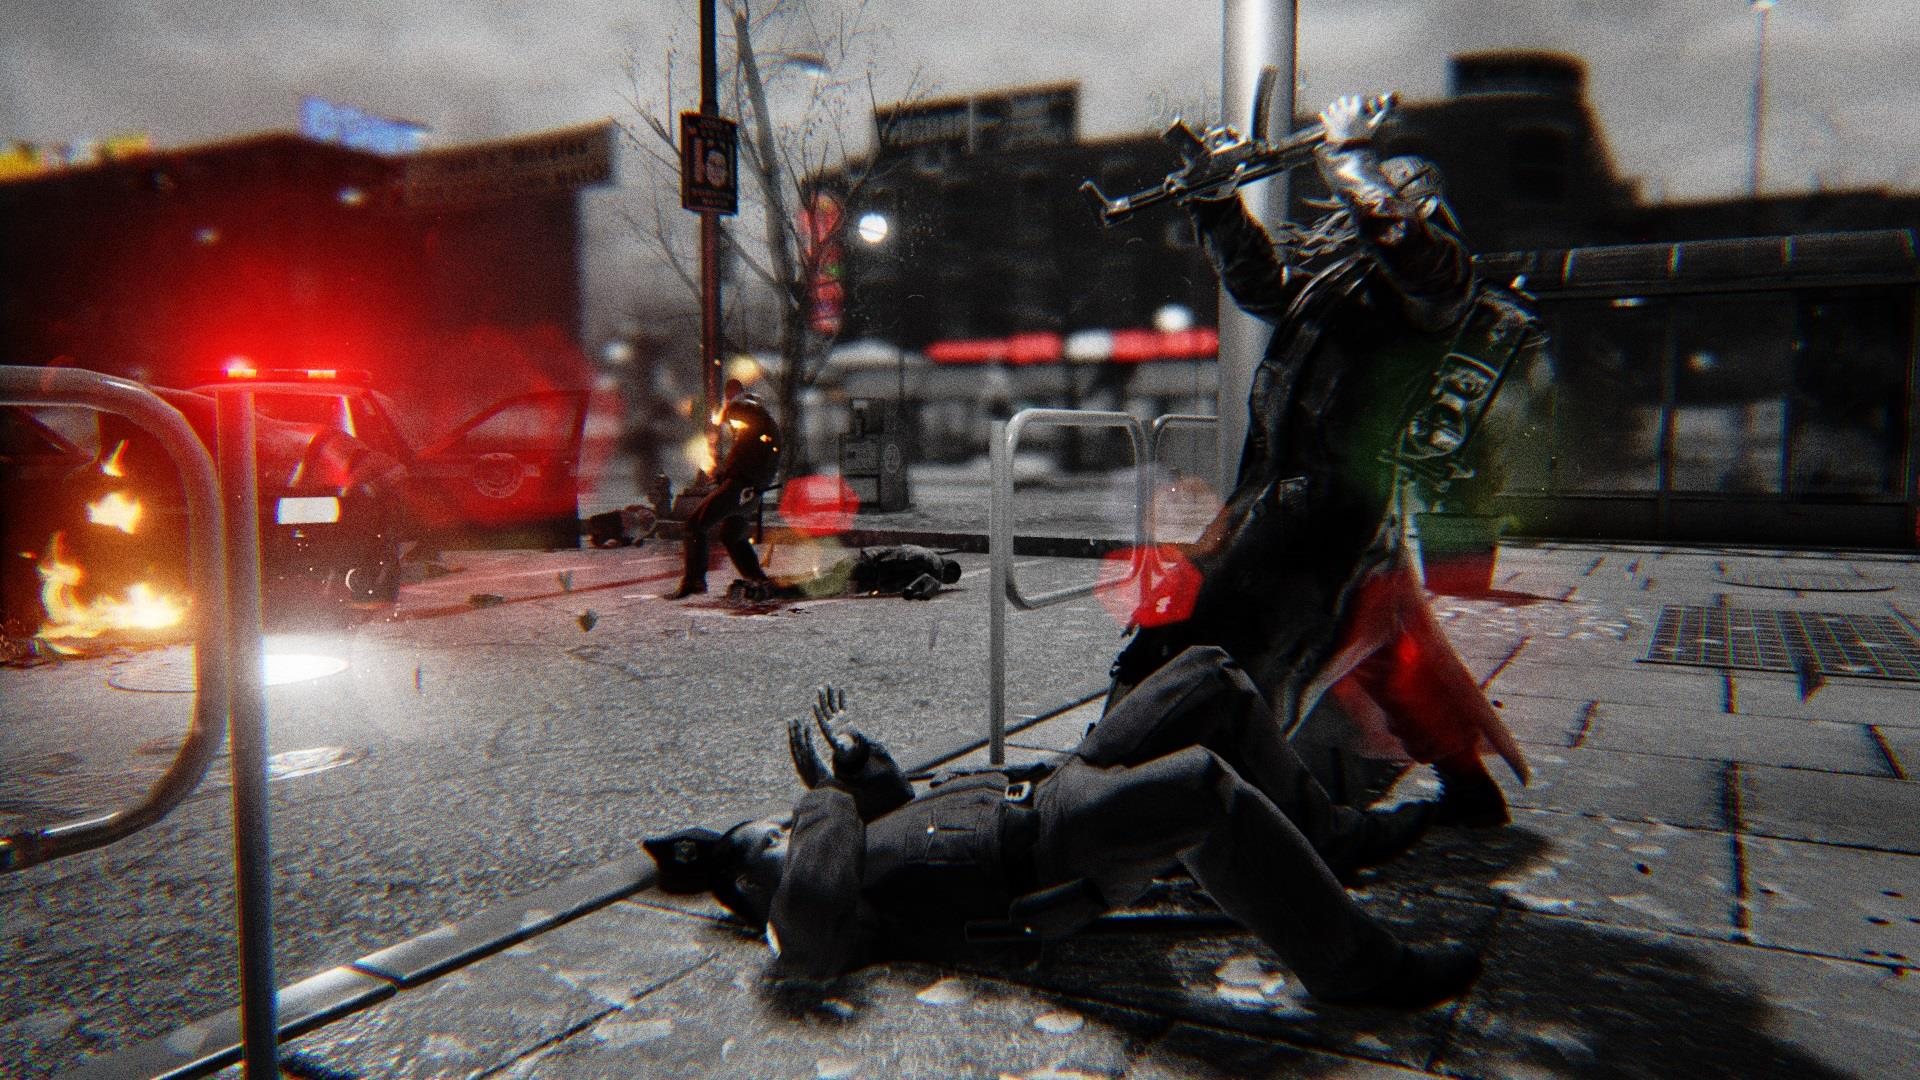 Hatred available early, but GOG won't sell it - VG247